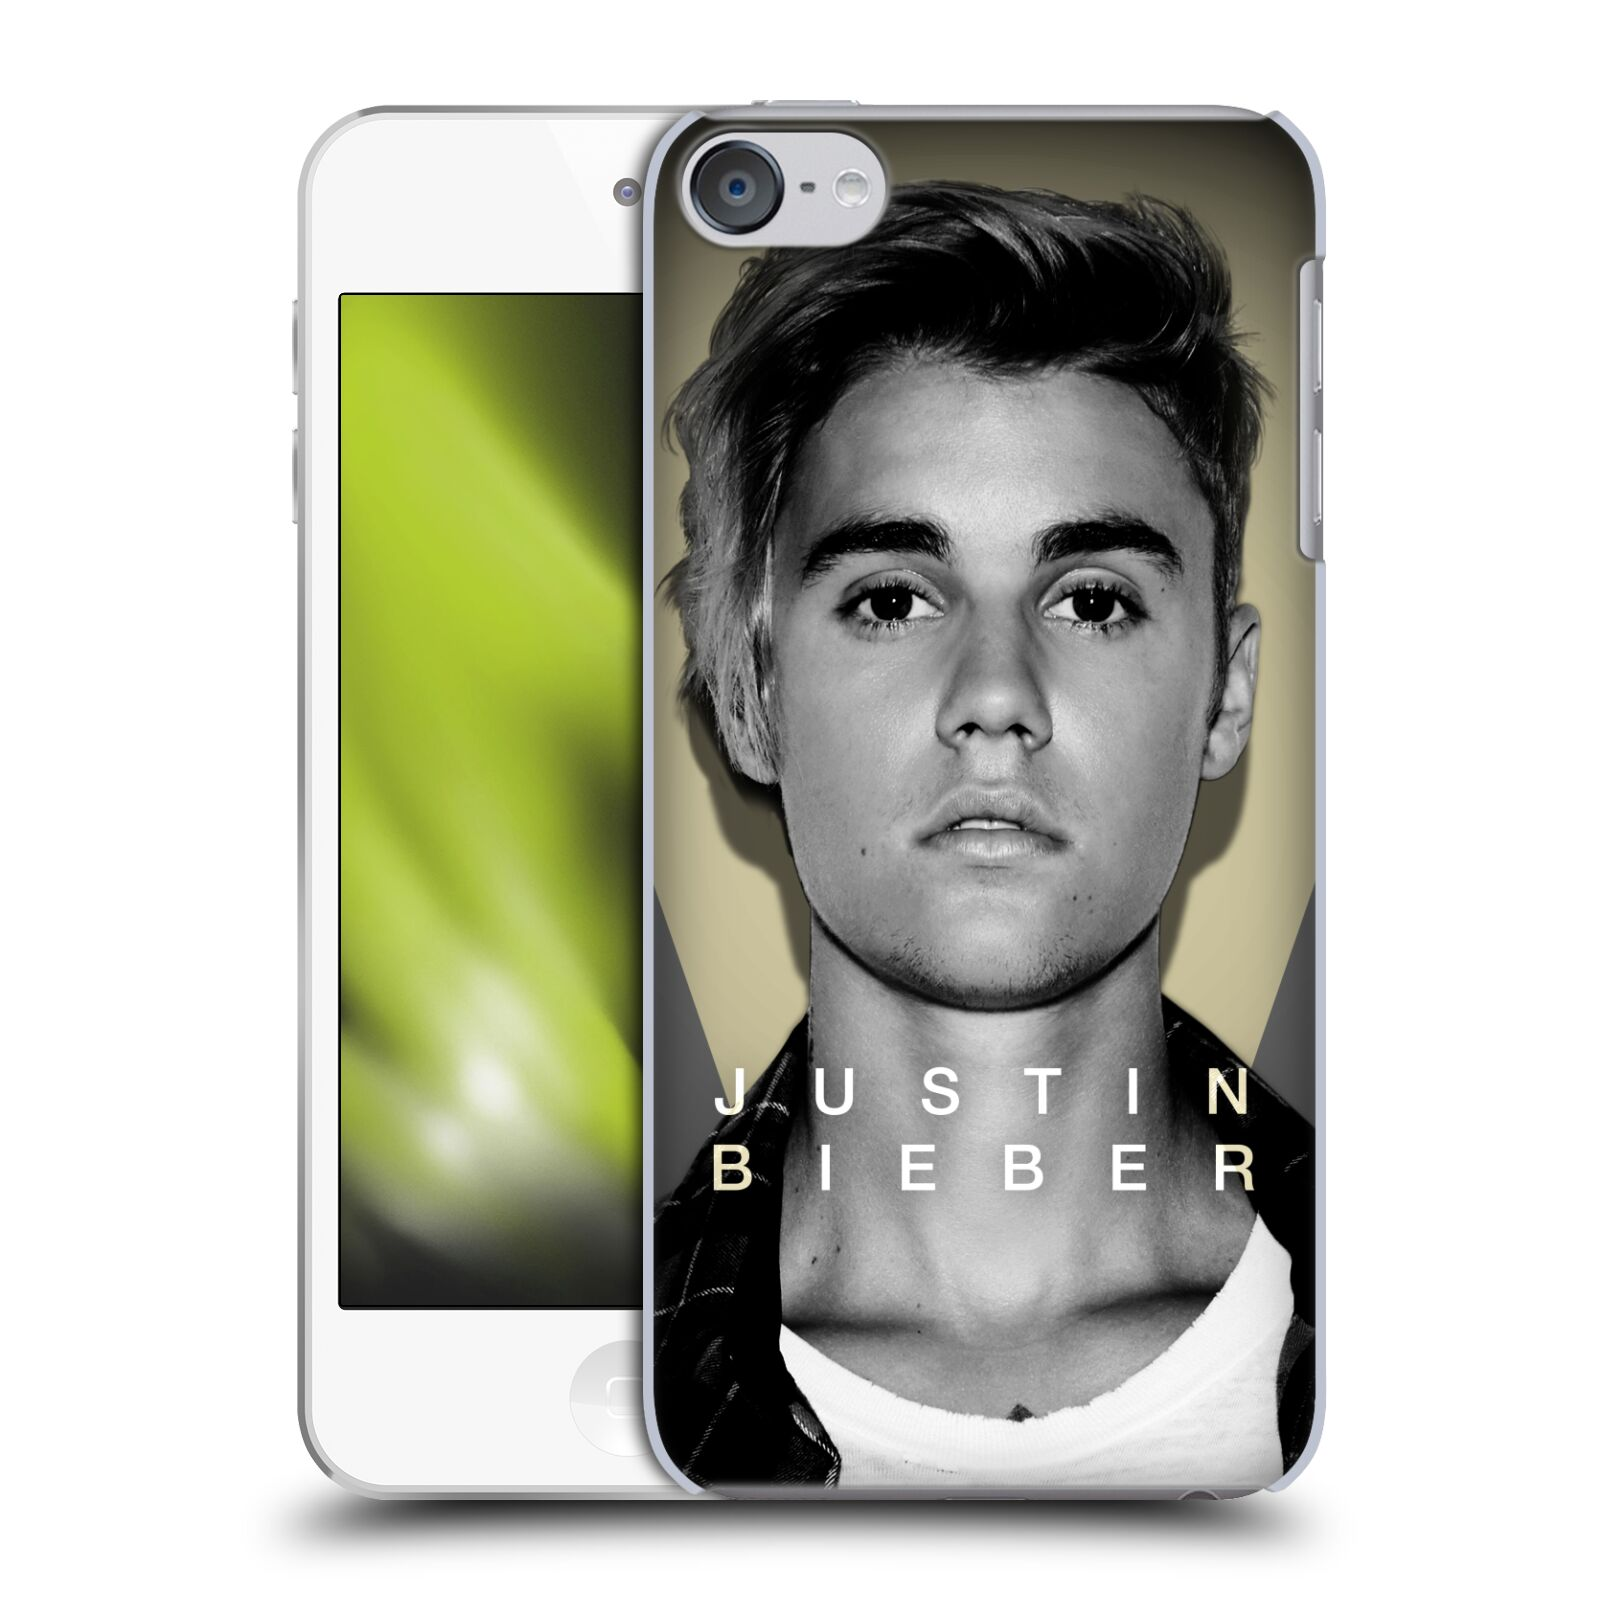 OFFICIAL-JUSTIN-BIEBER-PURPOSE-B-amp-W-HARD-BACK-CASE-FOR-APPLE-iPOD-TOUCH-MP3